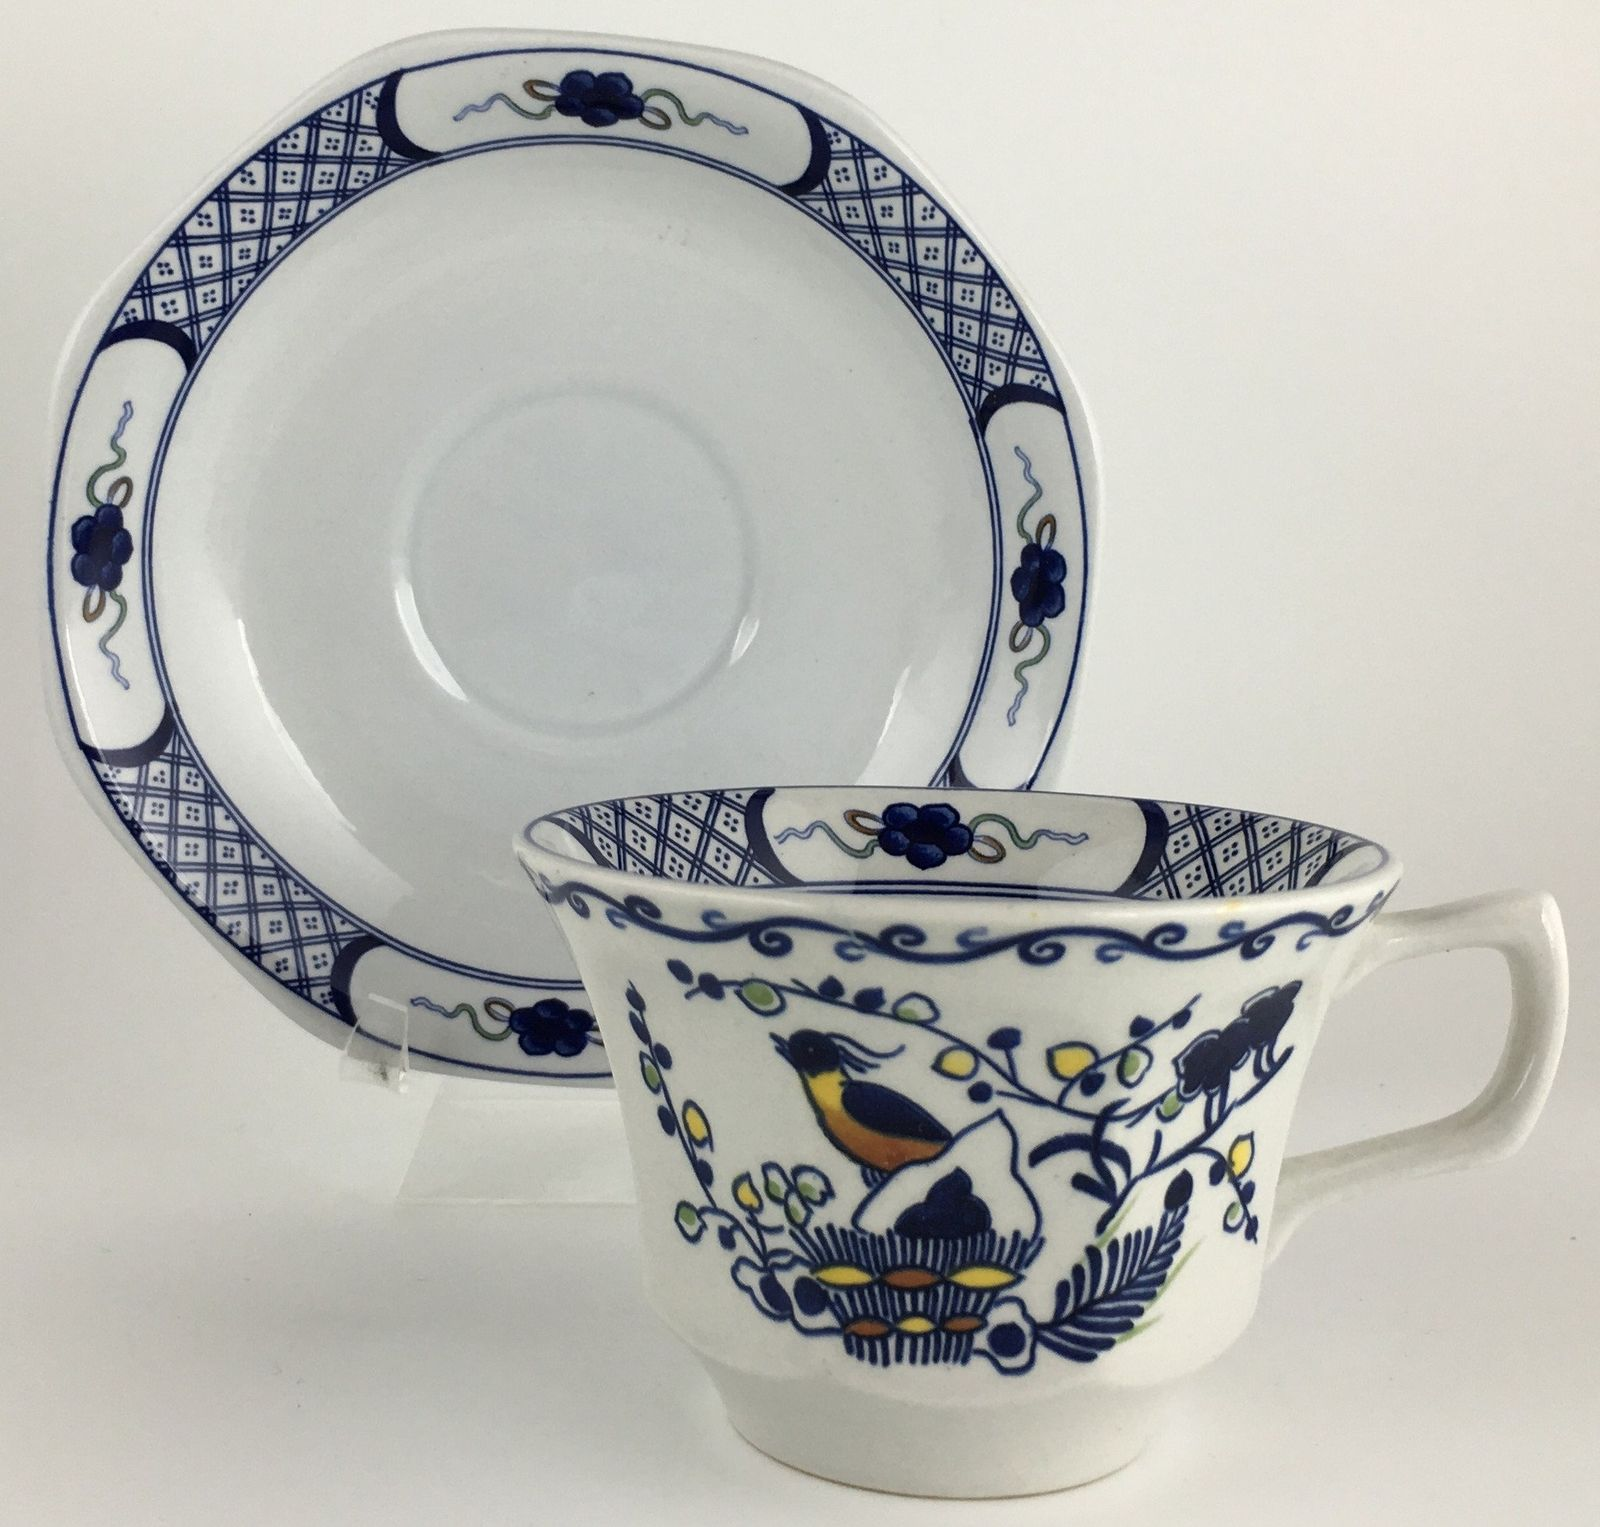 Primary image for Wedgwood Volendam Cup & saucer